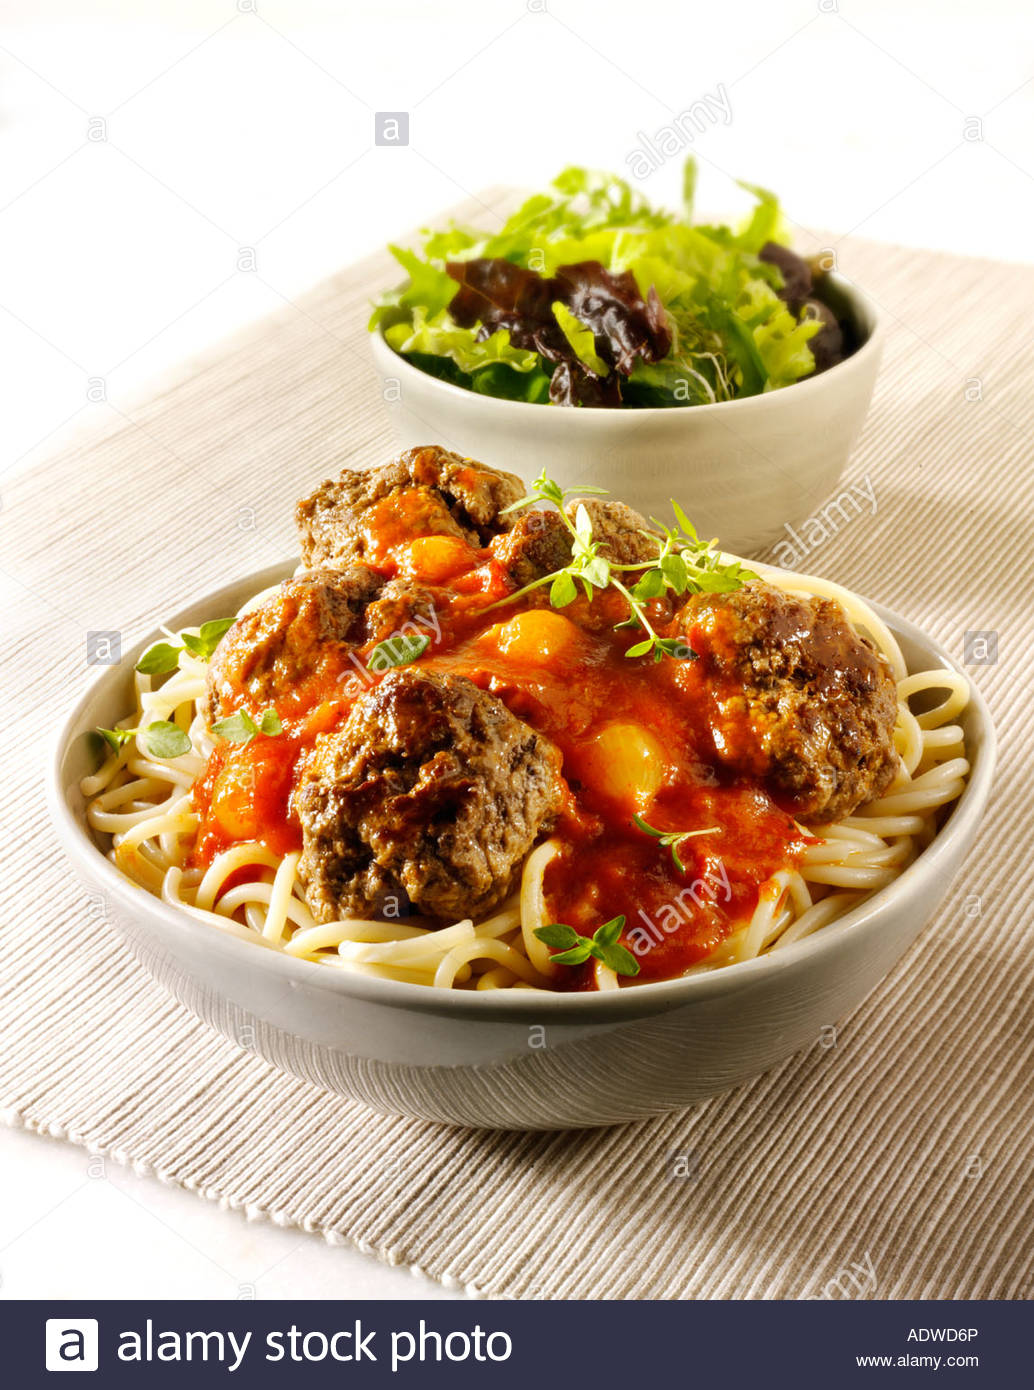 Meat Balls on spghetti with a tomato basil shalott sauce with a green salad in a table setting - Stock Image